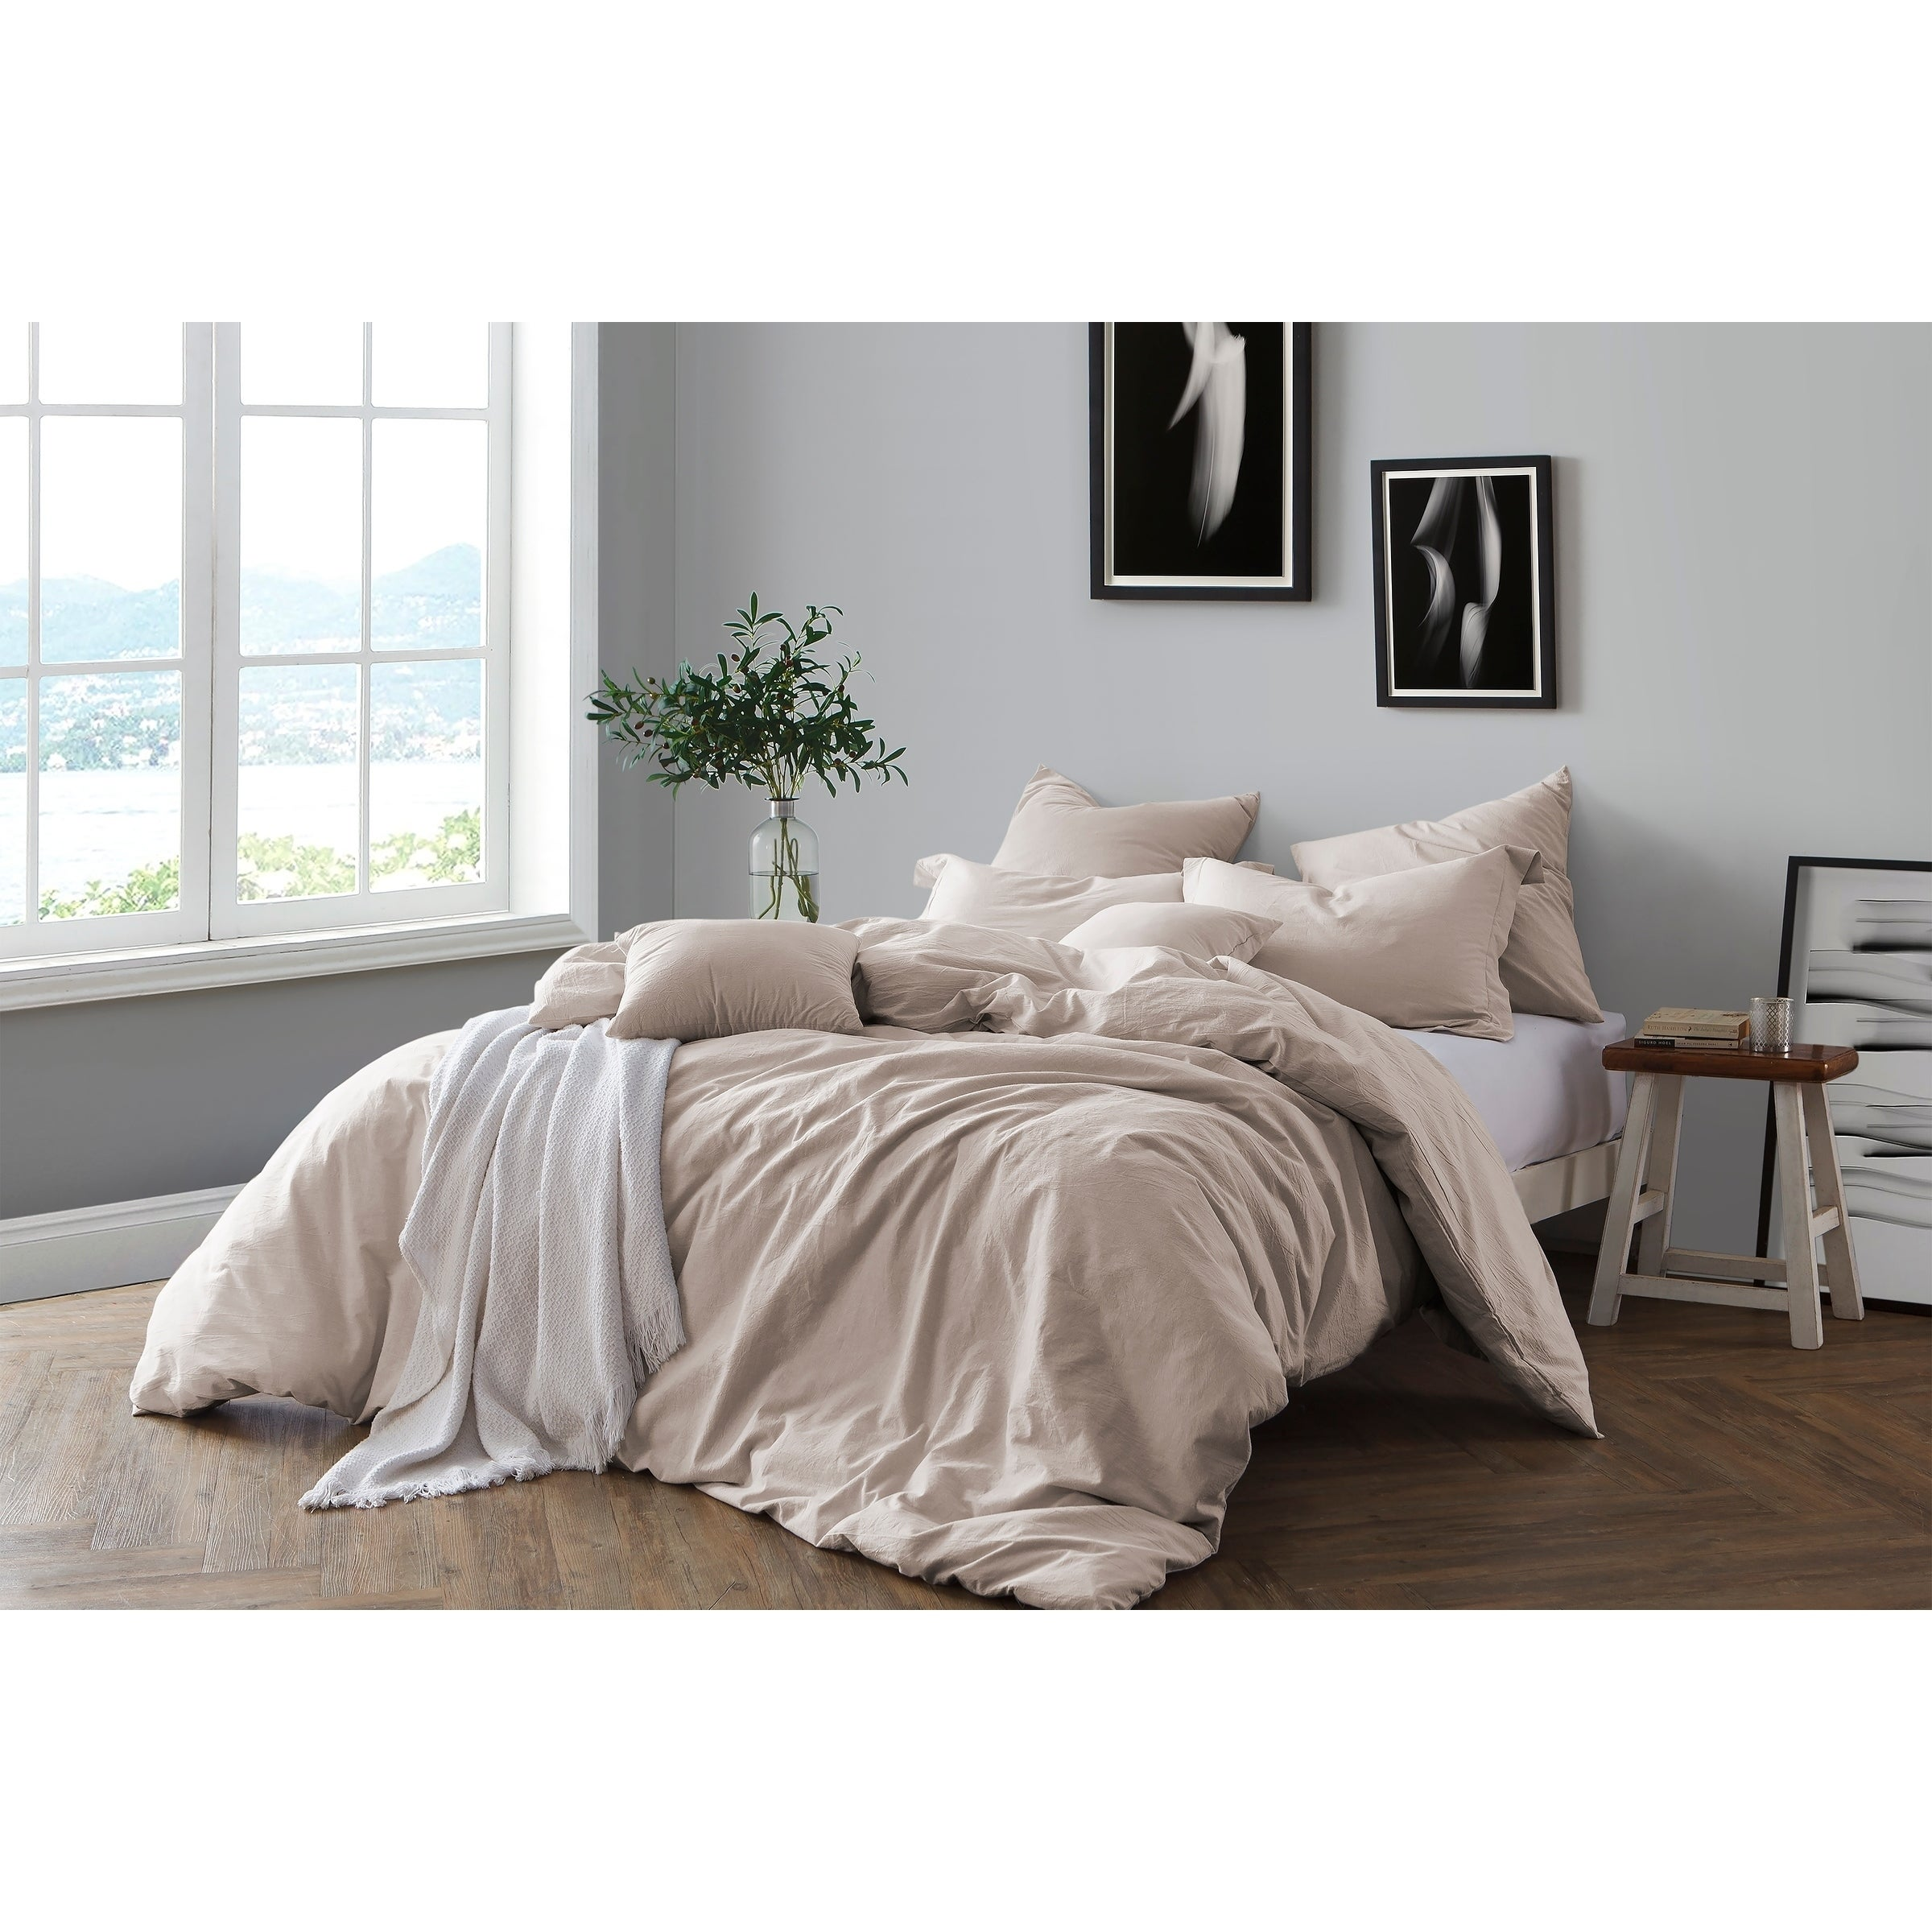 Shop all natural prewashed yarn dye cotton chambray duvet cover set luxurous soft wrinkled look eco friendly package on sale free shipping today